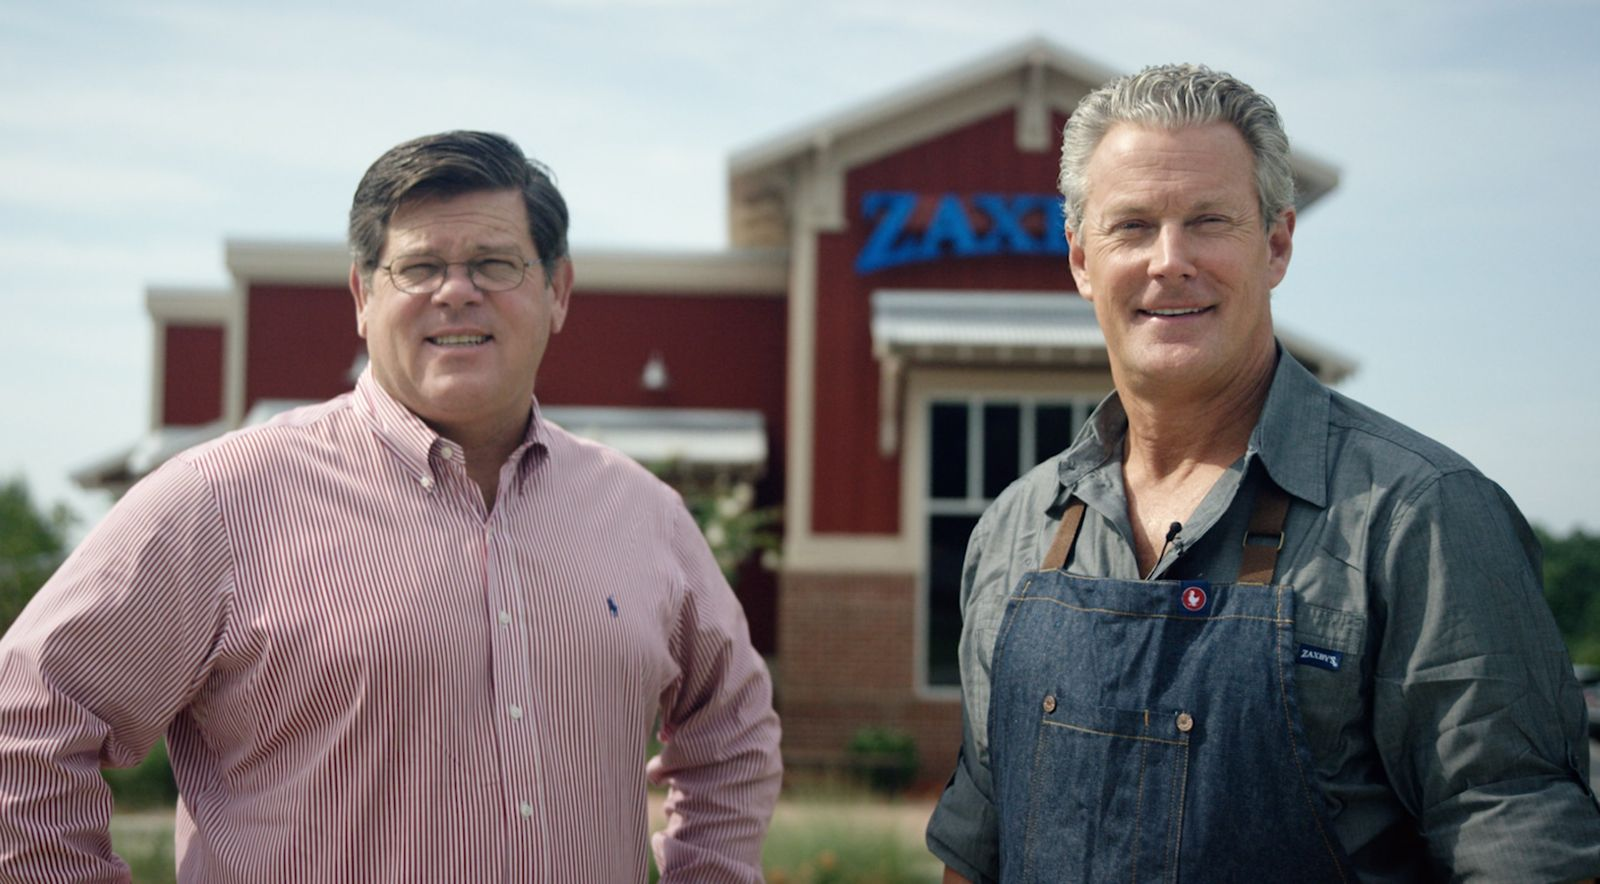 Tony Townley, Zaxby's chief strategy officer and co-founder with Zach McLeroy, Zaxby's CEO and co-founder